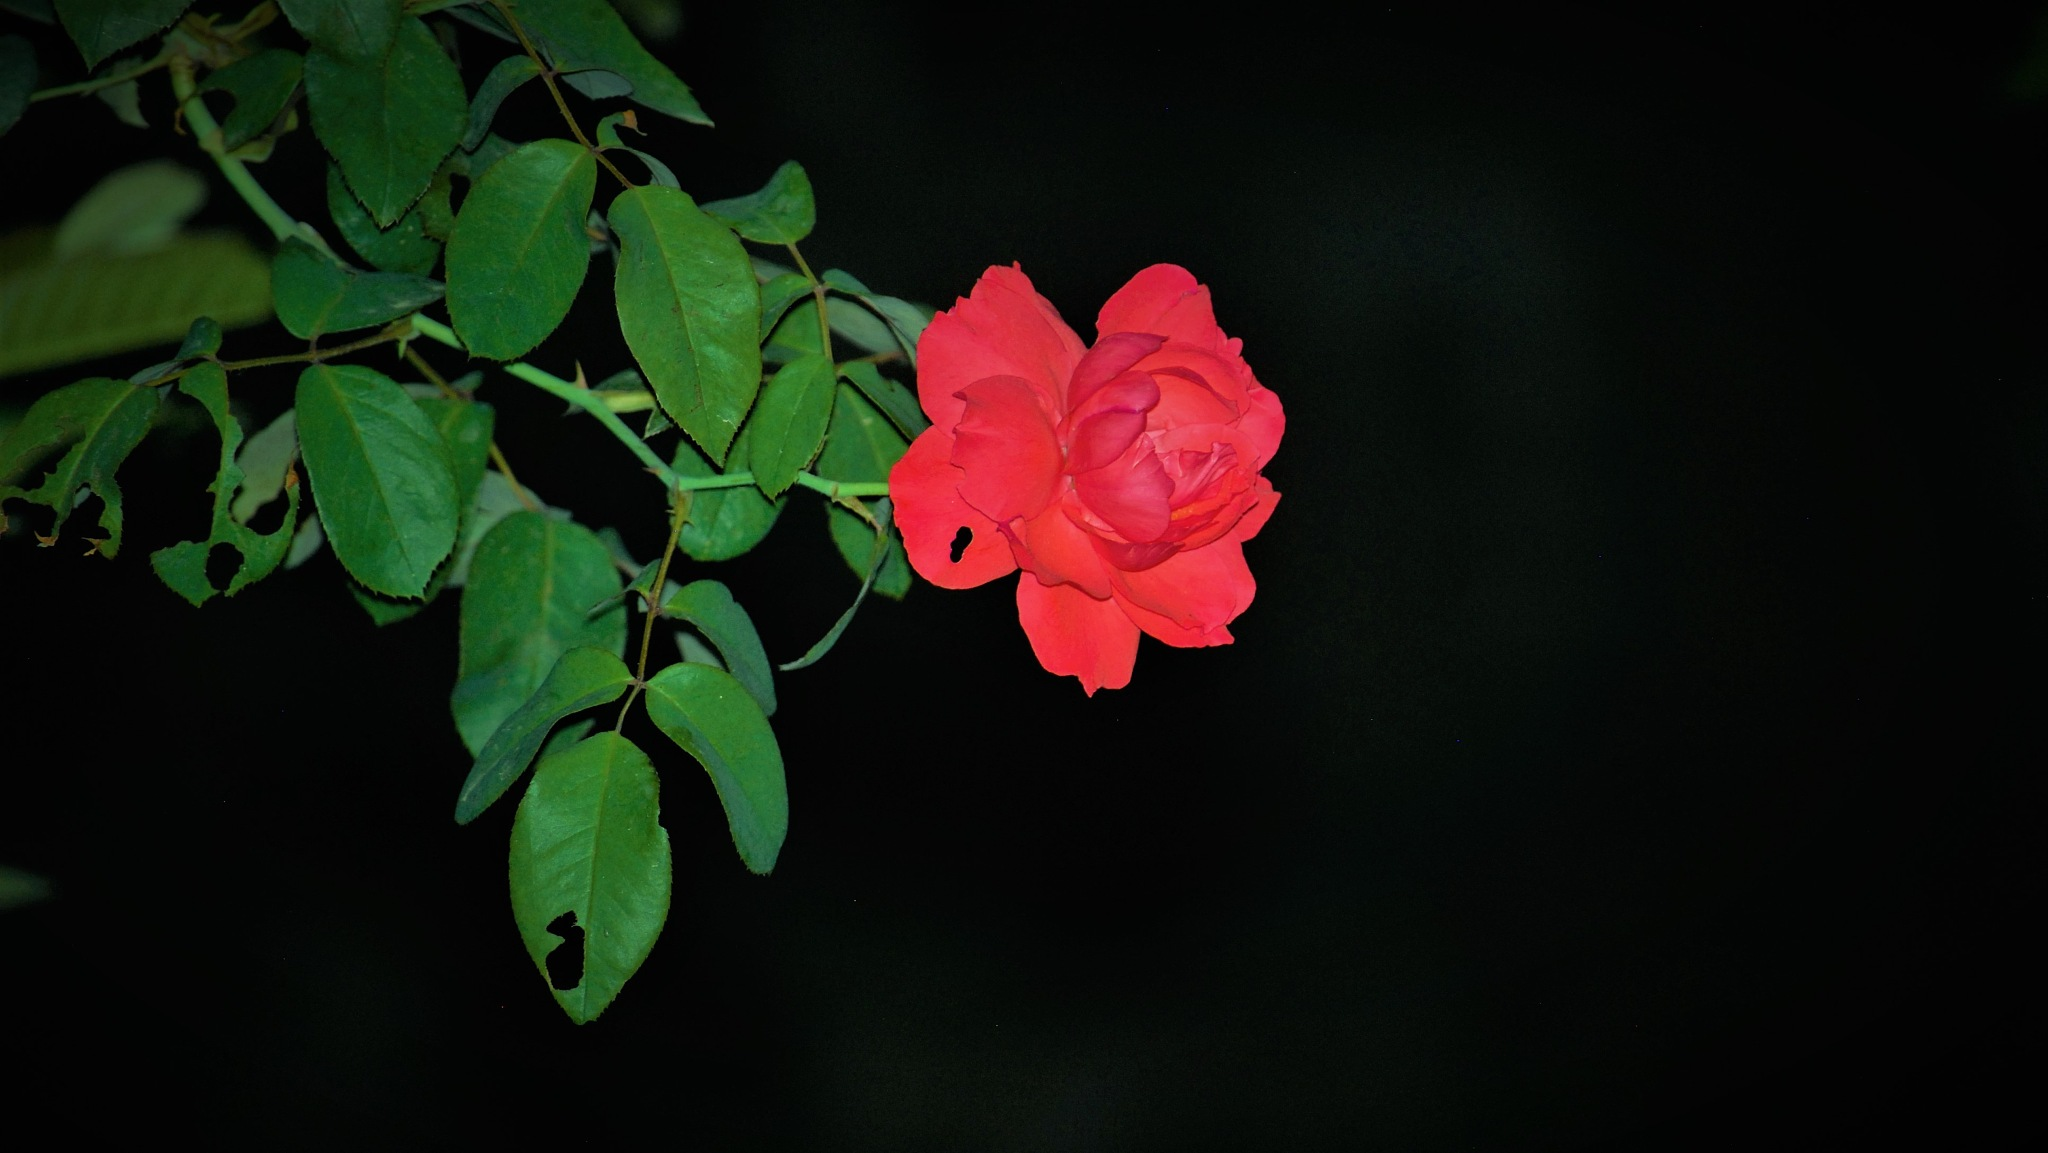 #nightshot #rose #redrose #Nepal #photography by Subash Tiwari